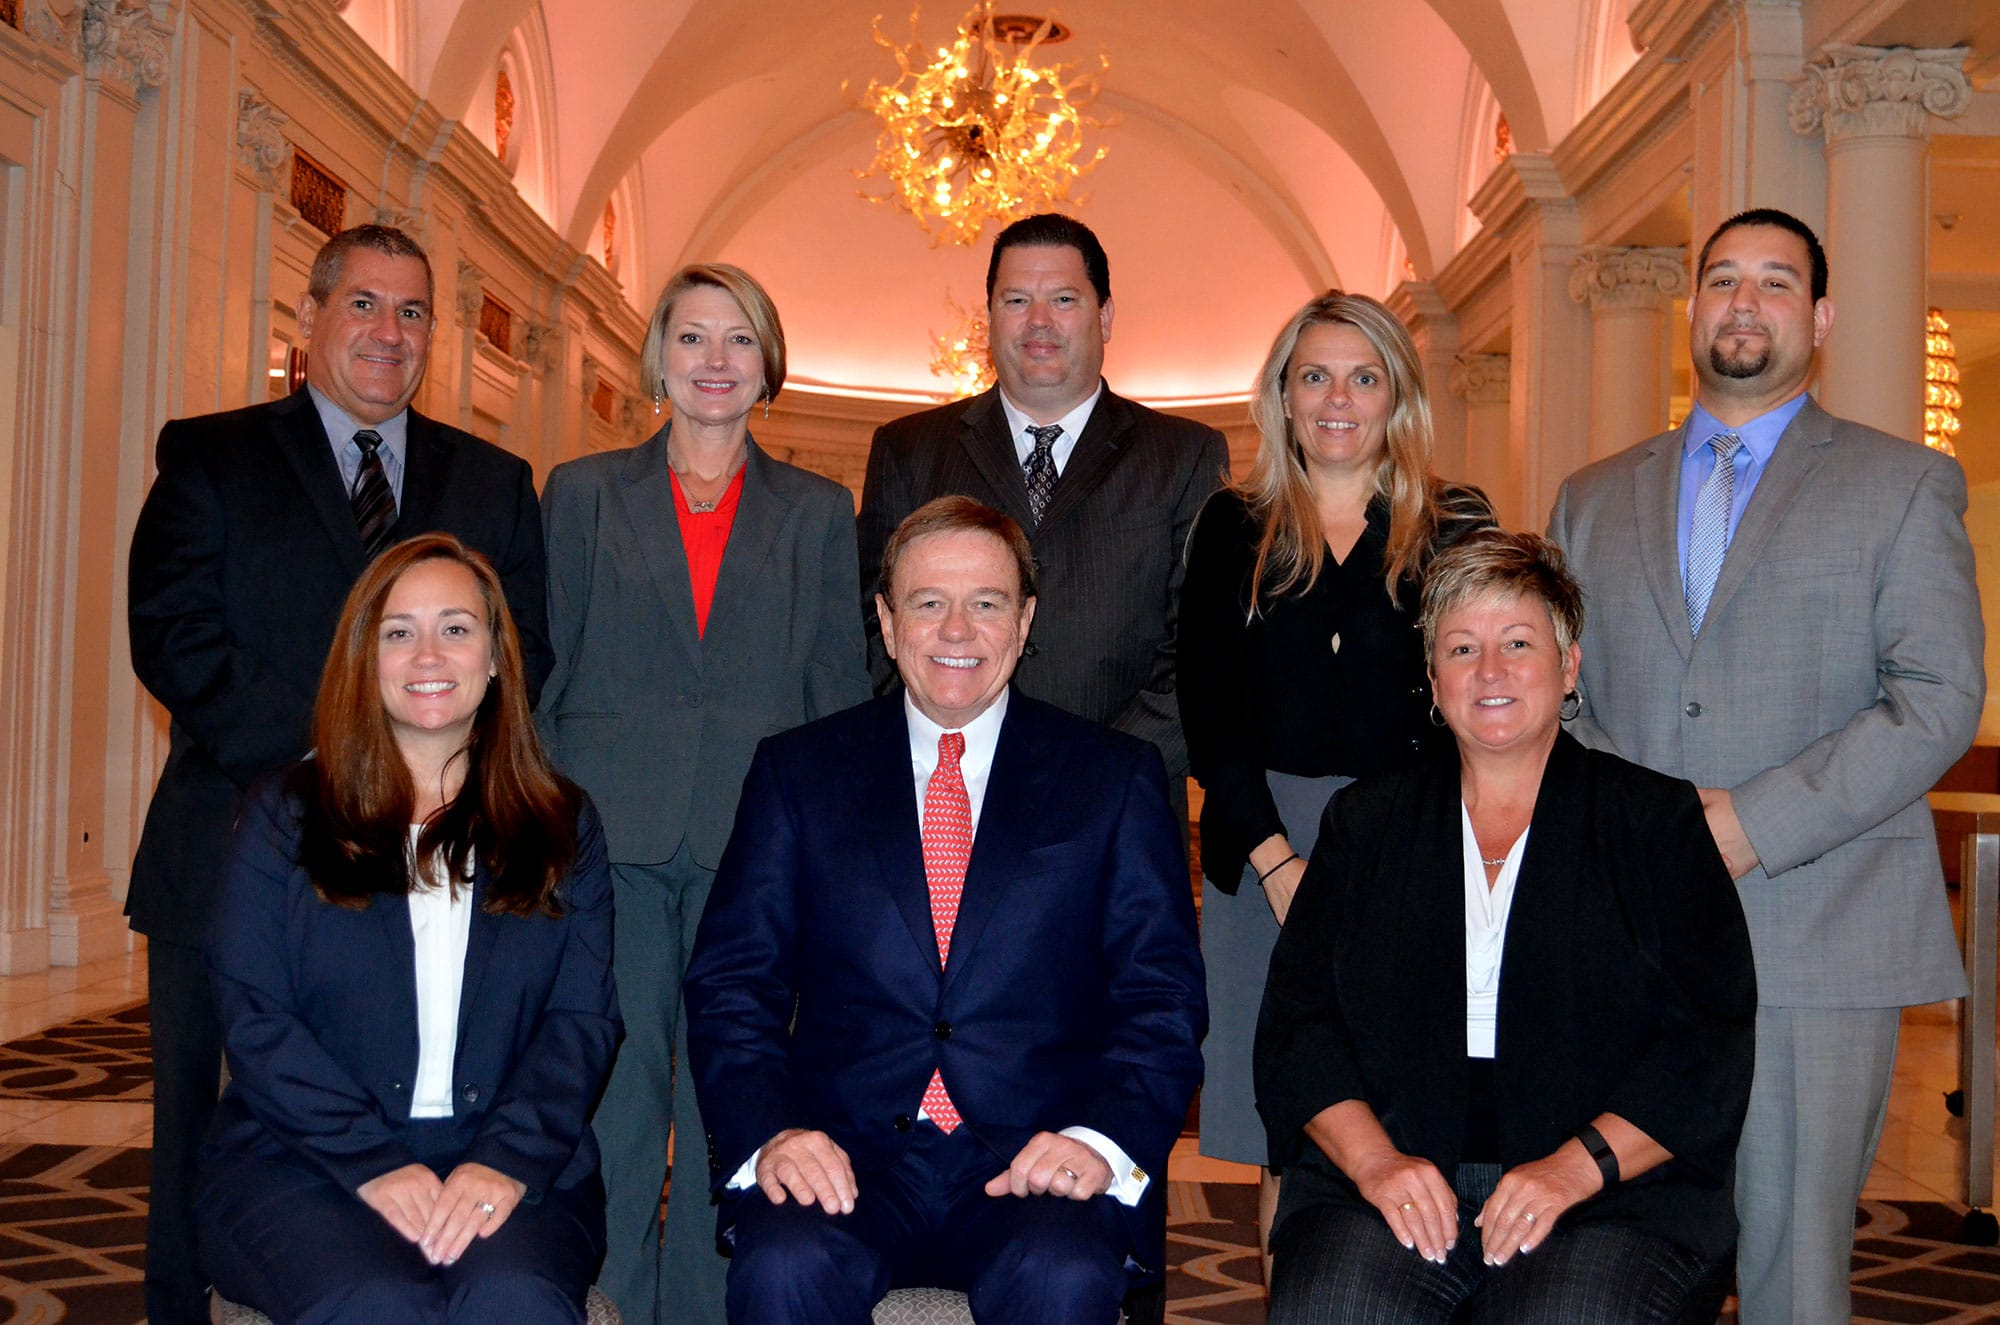 left to right (back row): Brian Dion, David Sweeney, Svet Repic-Qira, Michael Carnicella. (front row): Courtney Eidel, Robert Stack, Karen Hensley.